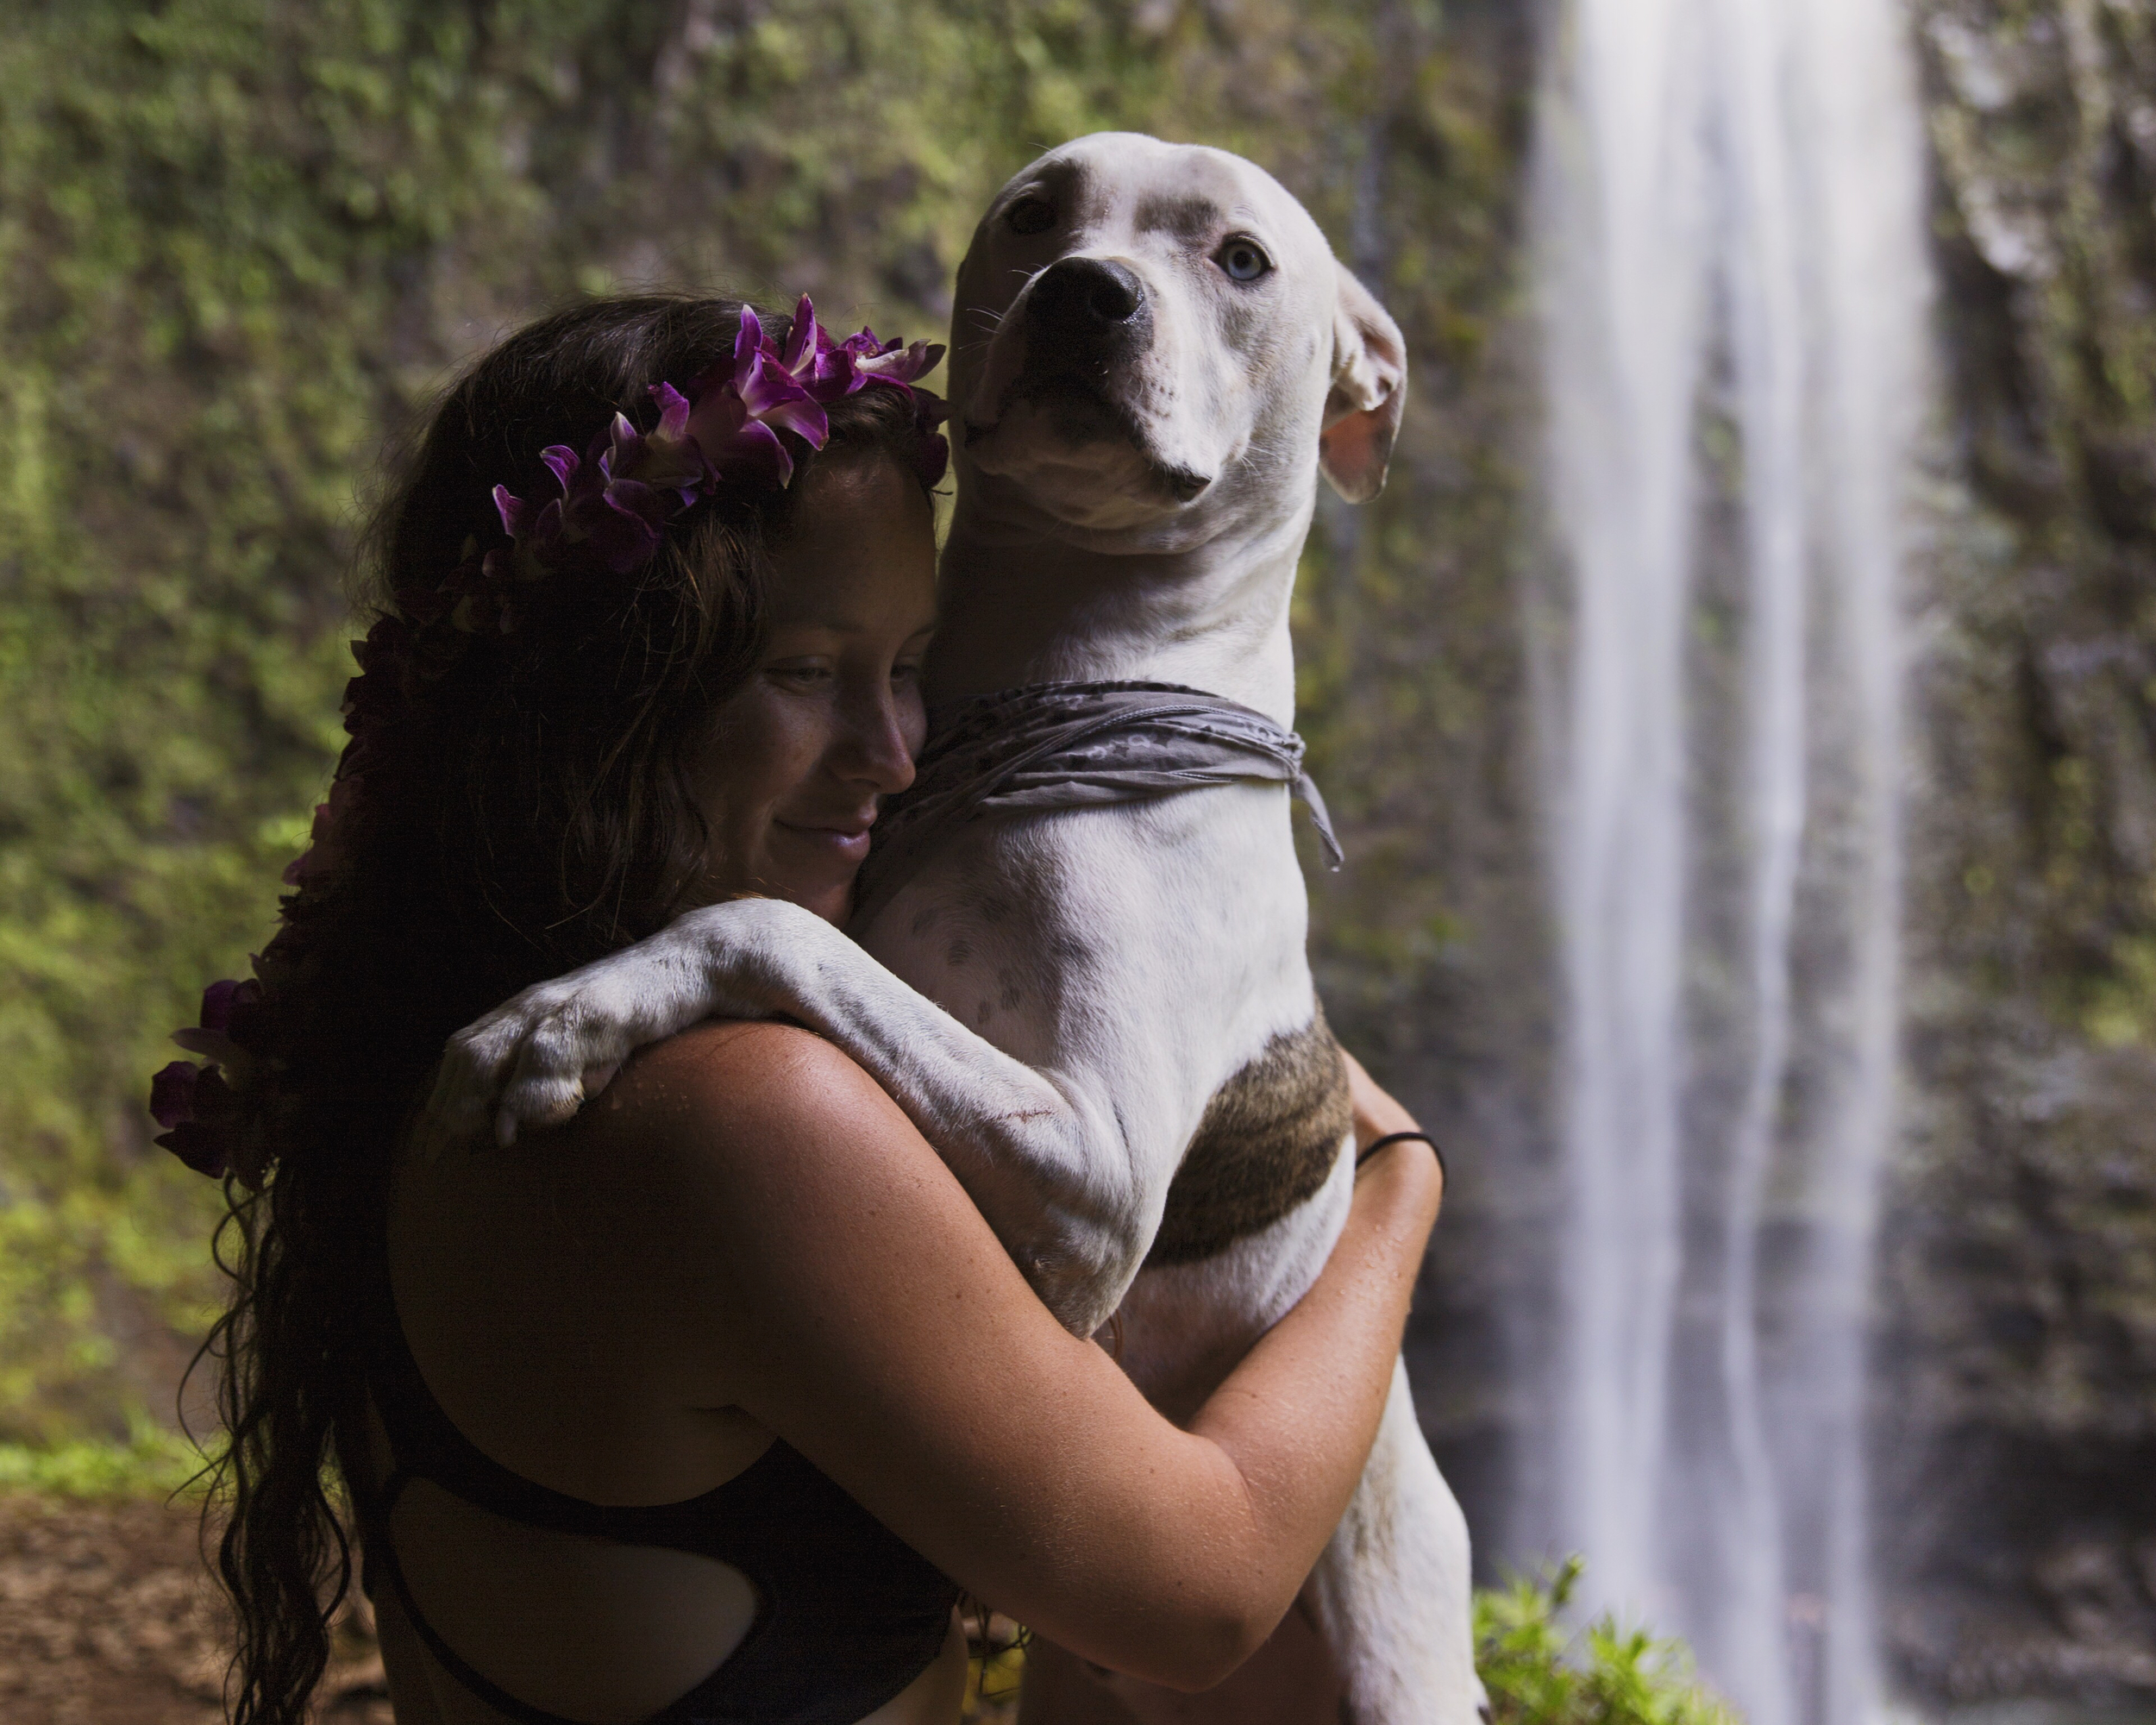 Pup's and Waterfall